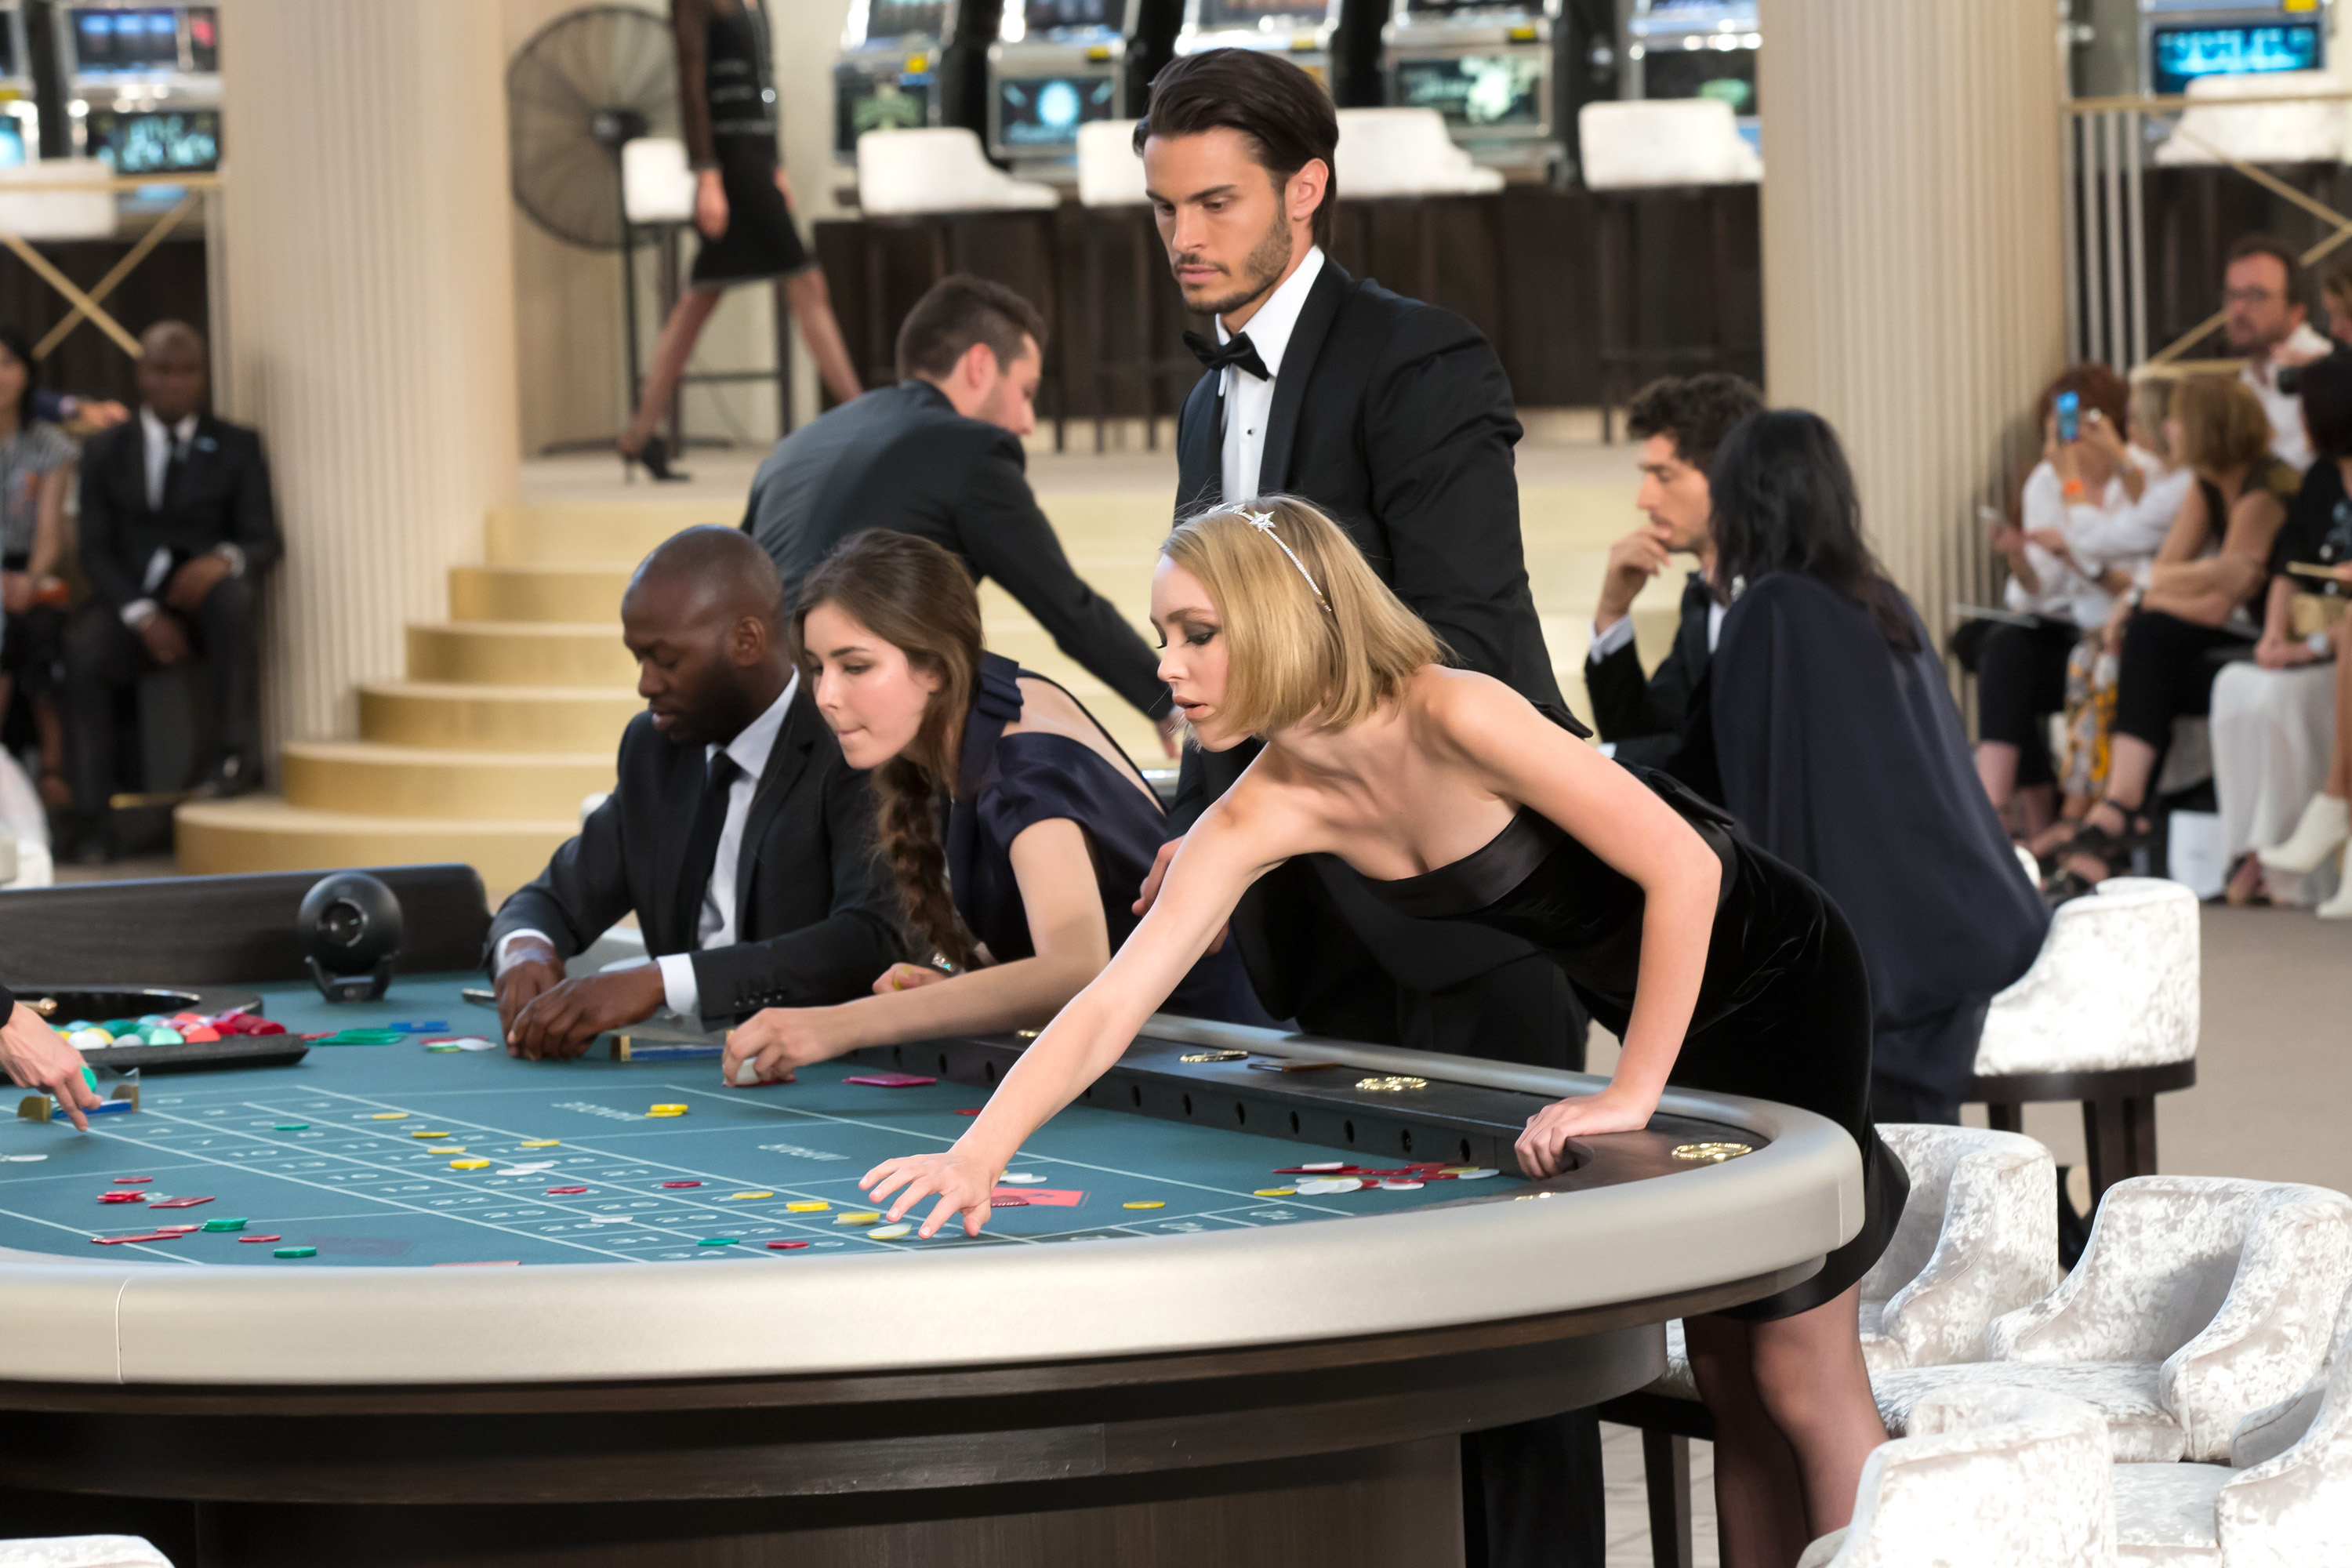 <p>Ever the consummate showman, Karl Lagerfeld created an 80s inspired casino for Chanel's Fall Haute Couture Fall 2015 show. Celebrity guests were seated at tables before models took to the catwalk, blurring the line between runway and front row.<br></p>